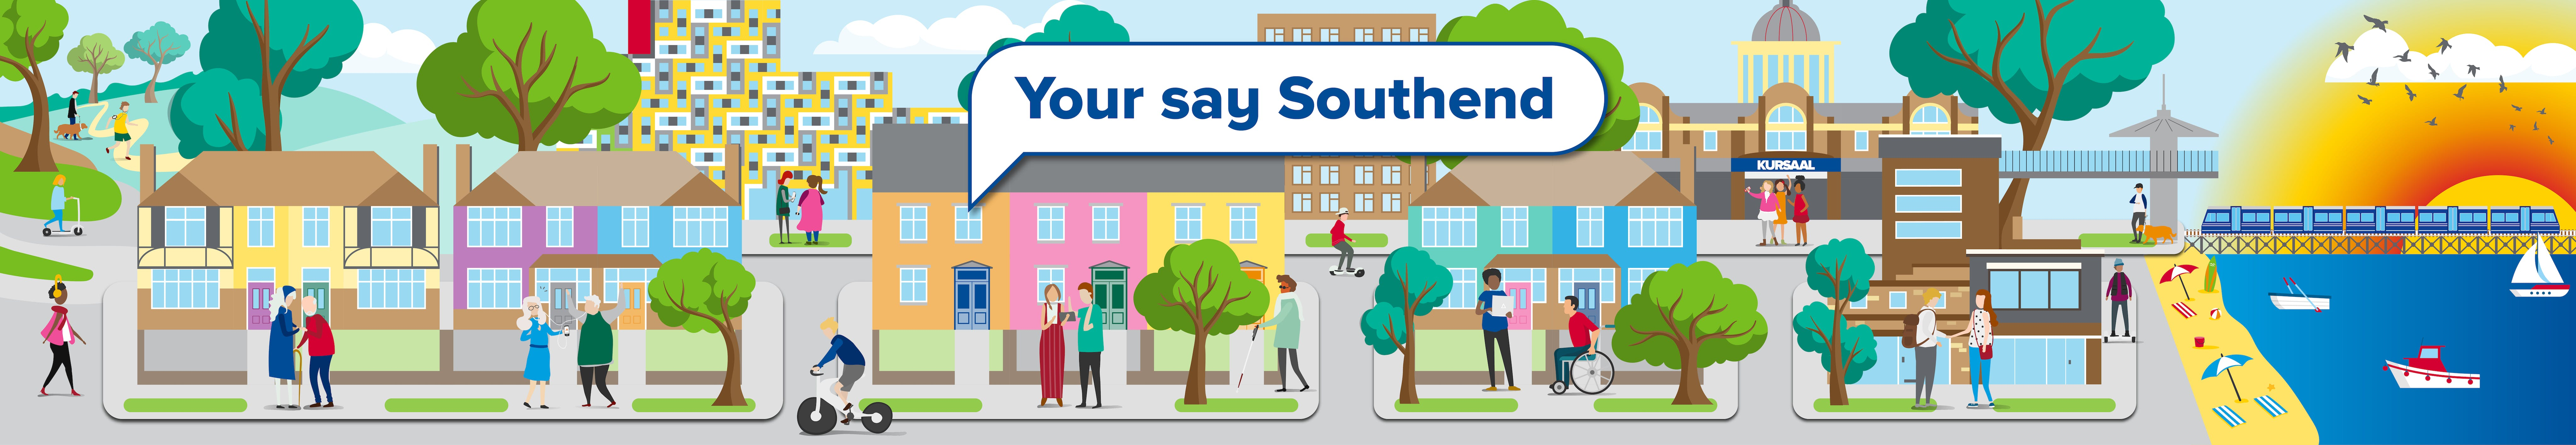 Your say Southend banner,cartoon graphic landscape on Southend with the Kurasal, pier, seaside and residents